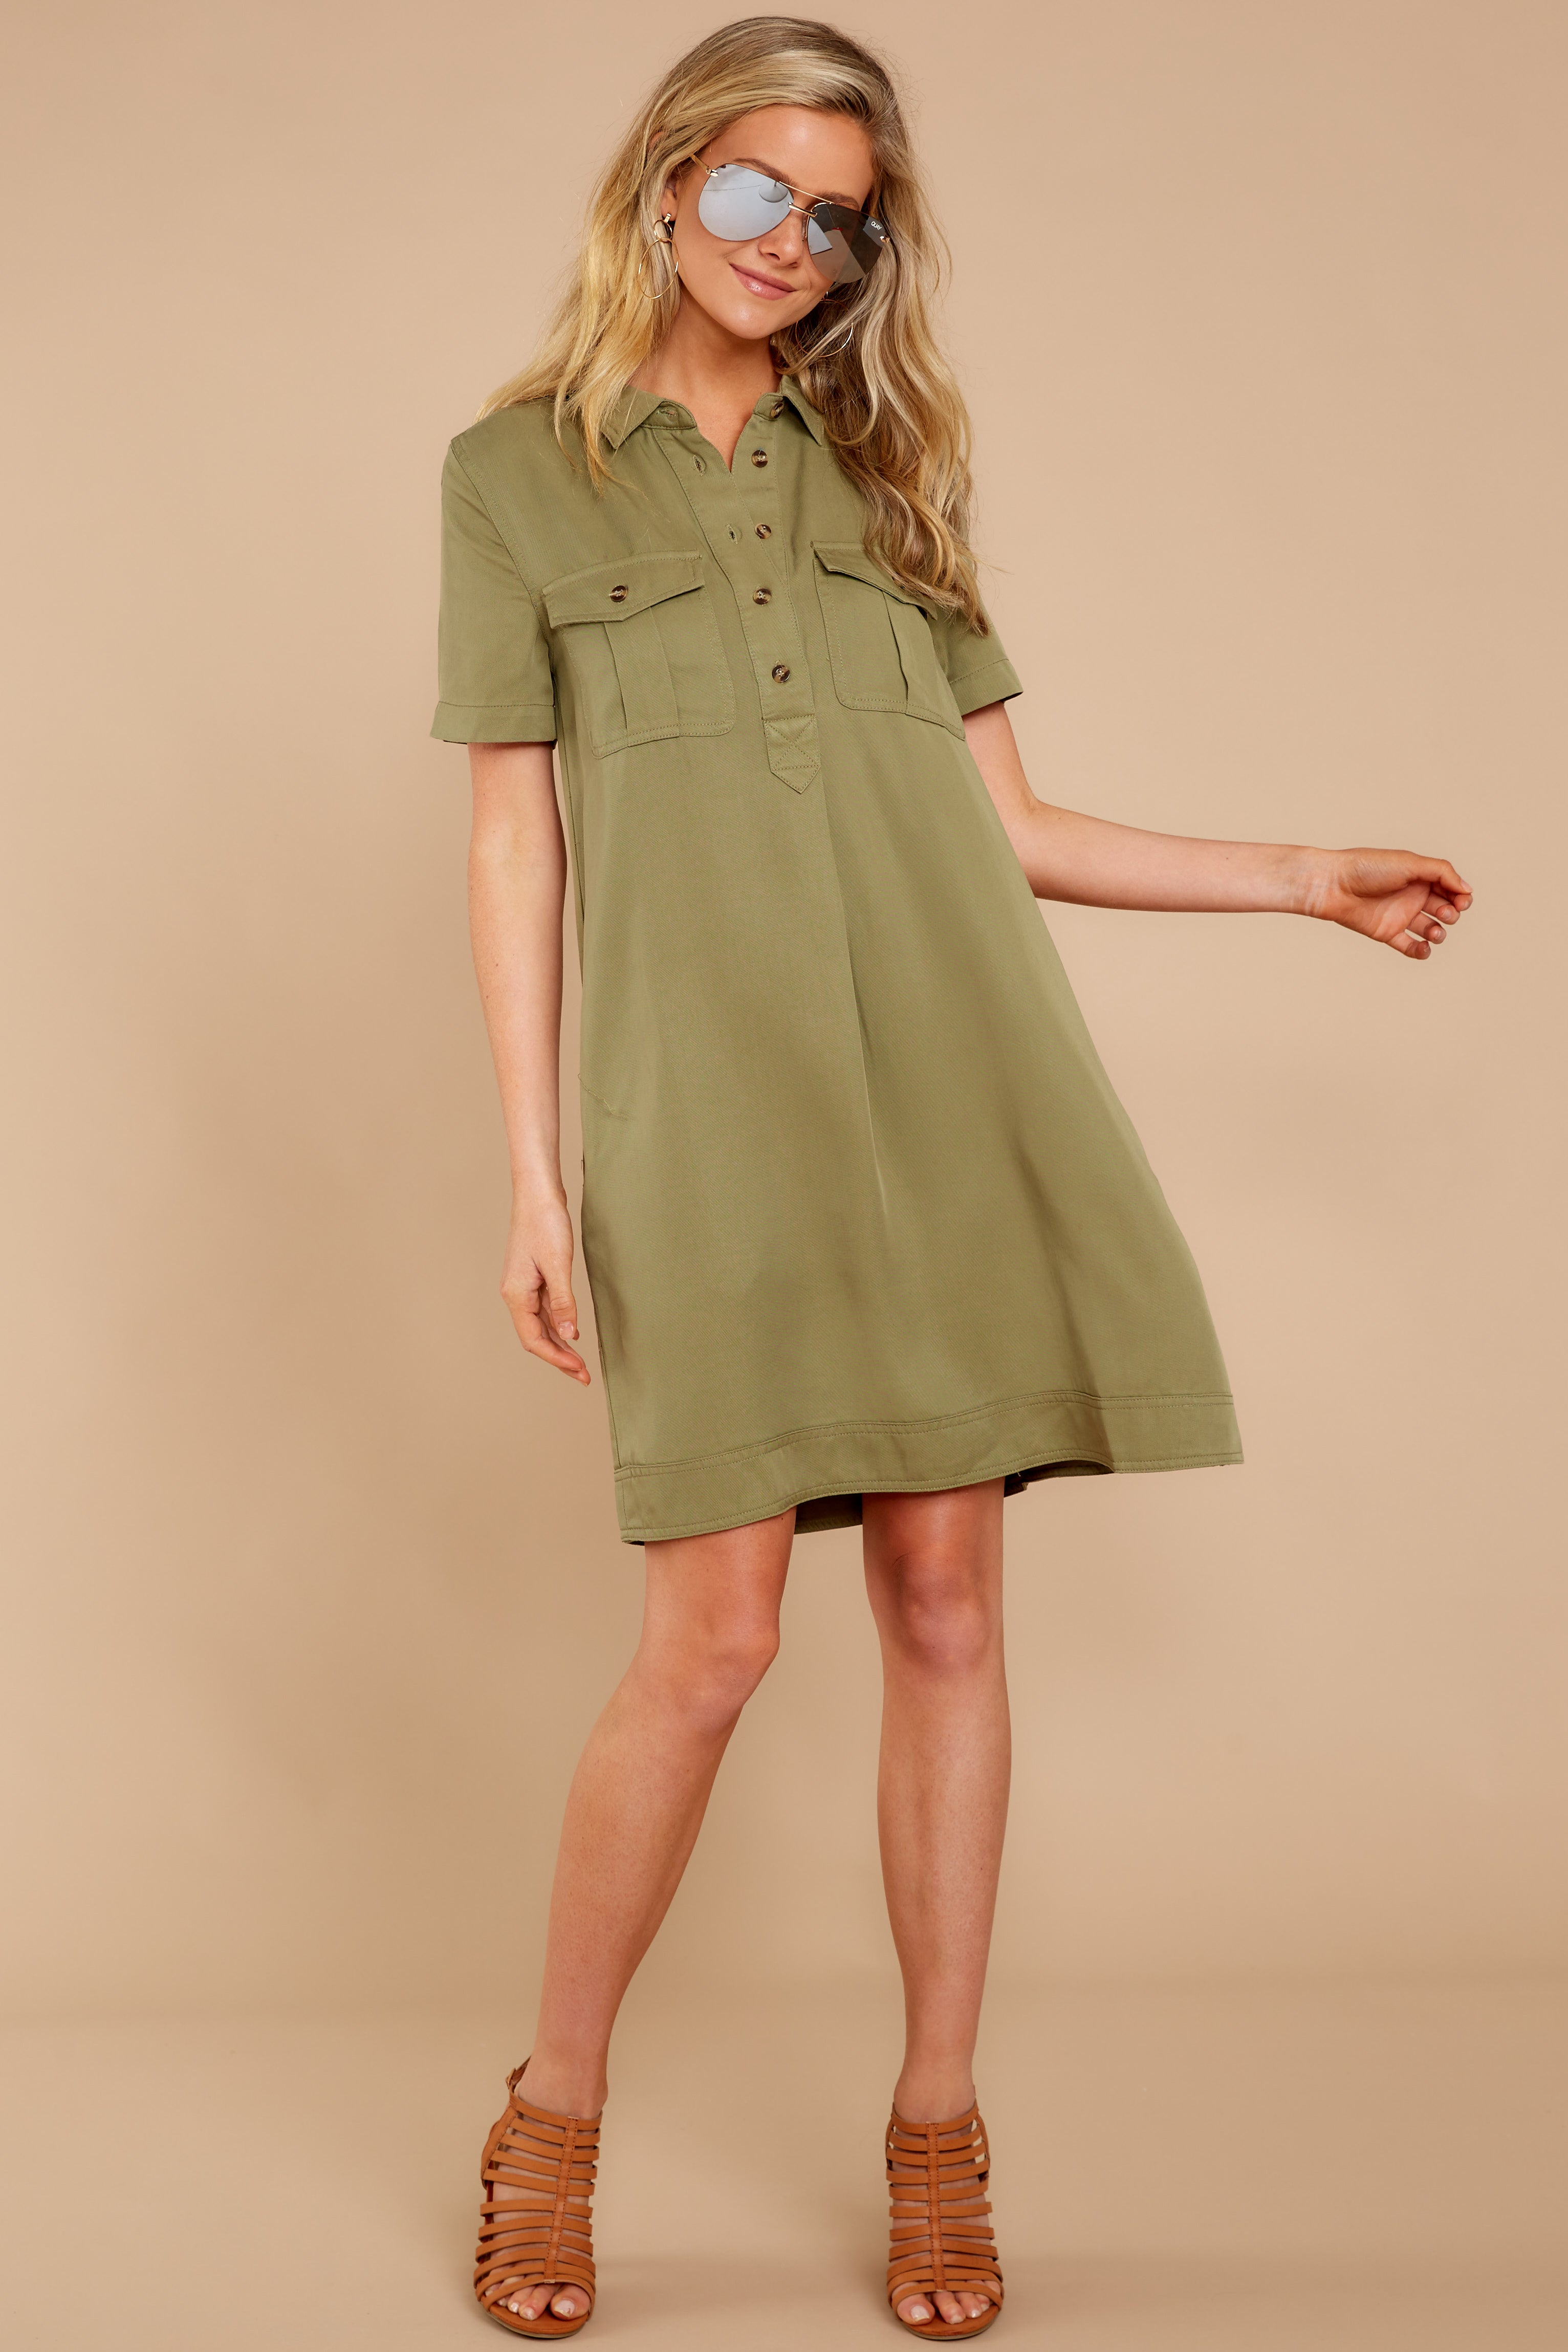 6814a813ee18 Chic Olive Green Dress - Cute Button Up Dress - Dress -  44.00 – Red ...